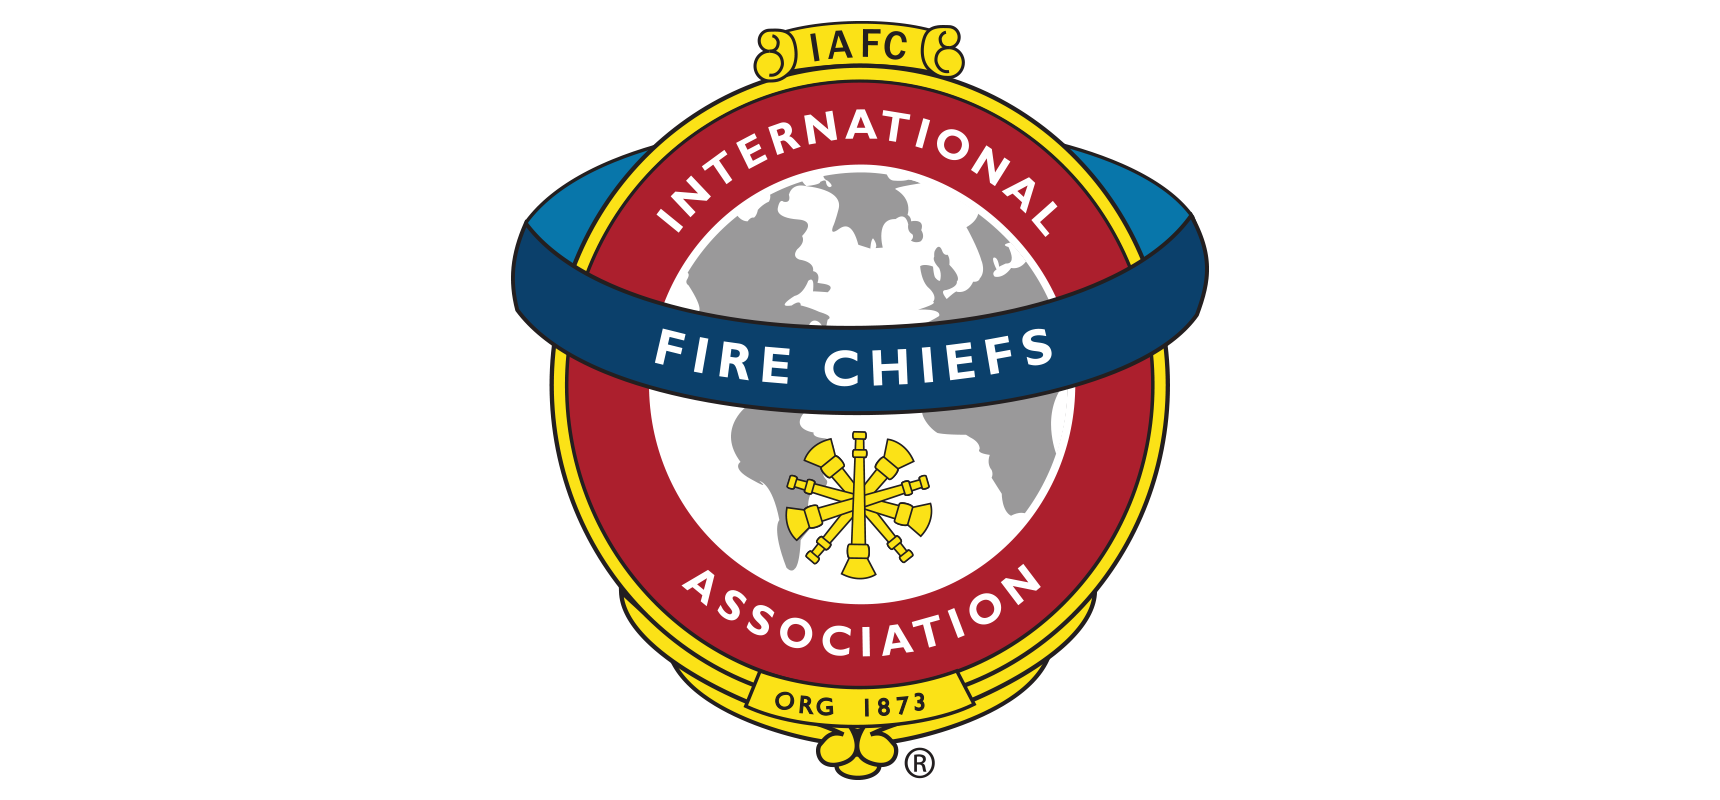 Every year, the IAFC recognizes on volunteer and one career fire chief with the Fire Chief of the Year award.